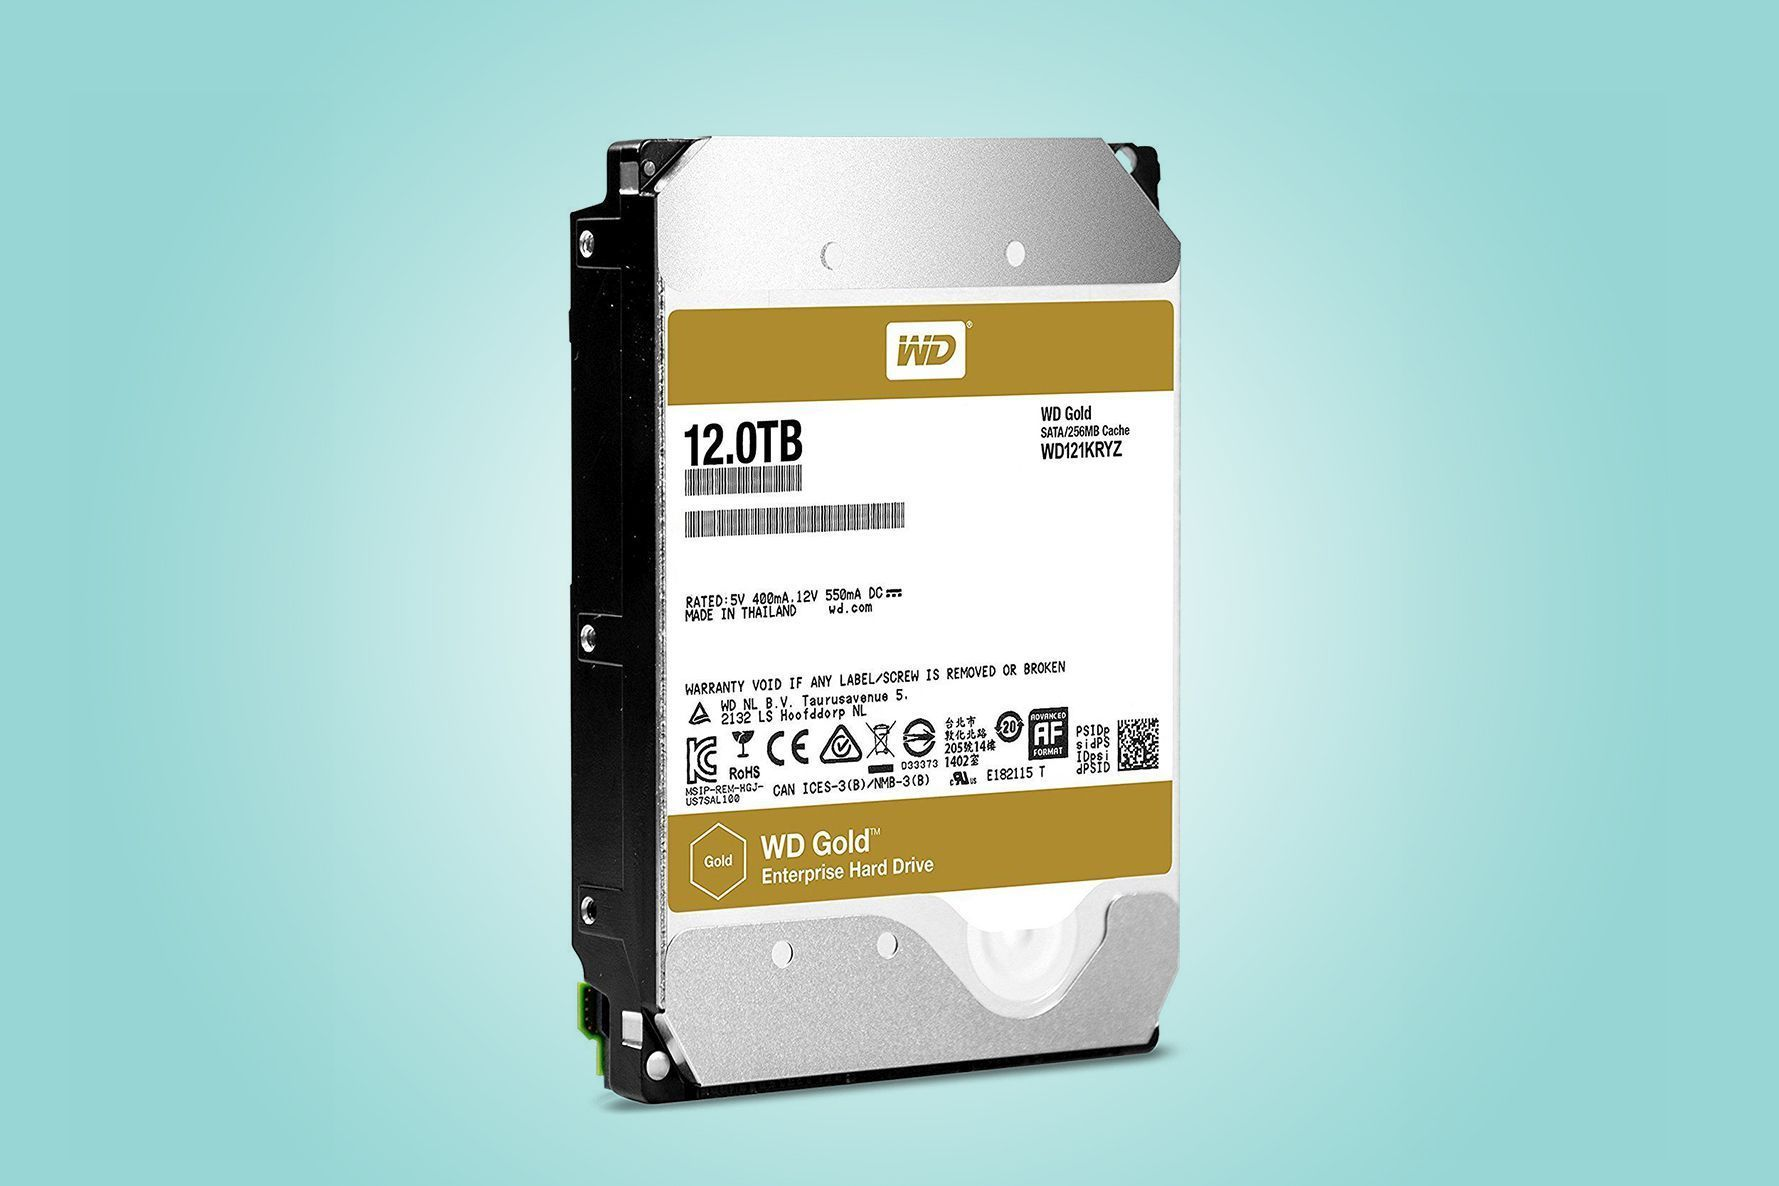 Wd Gold Enterprise Class Hard Drive Review 12tb Of Vast Storage Diagram Disk Mounting Goodness Pcworld